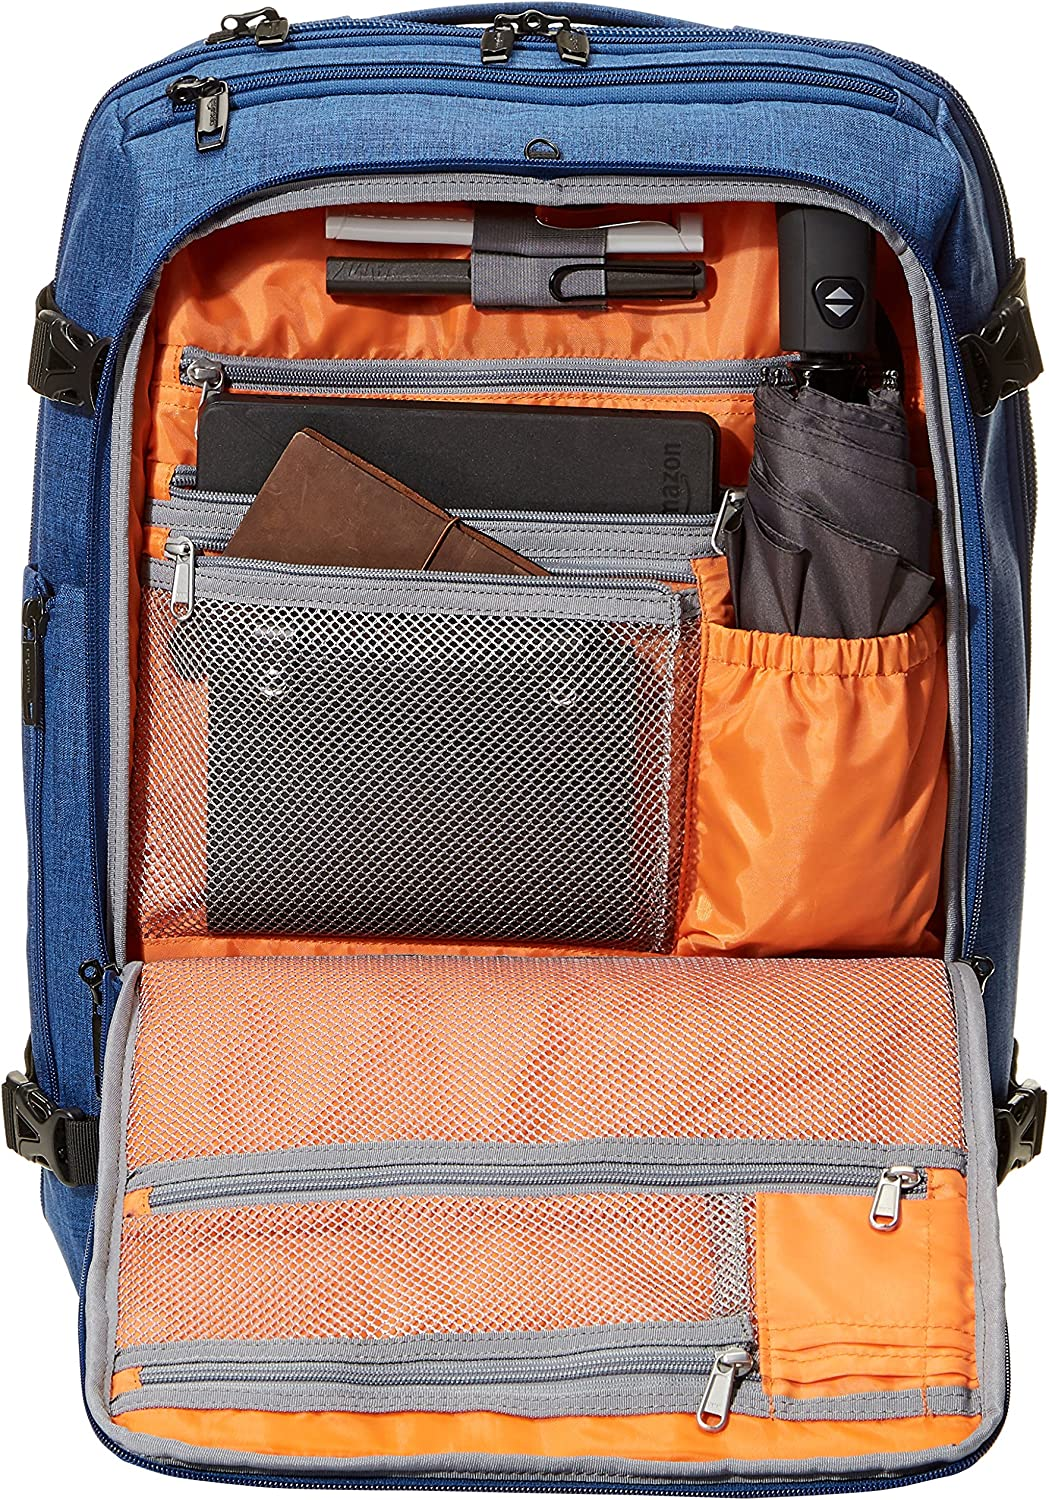 Basics Slim Carry On Travel Backpack